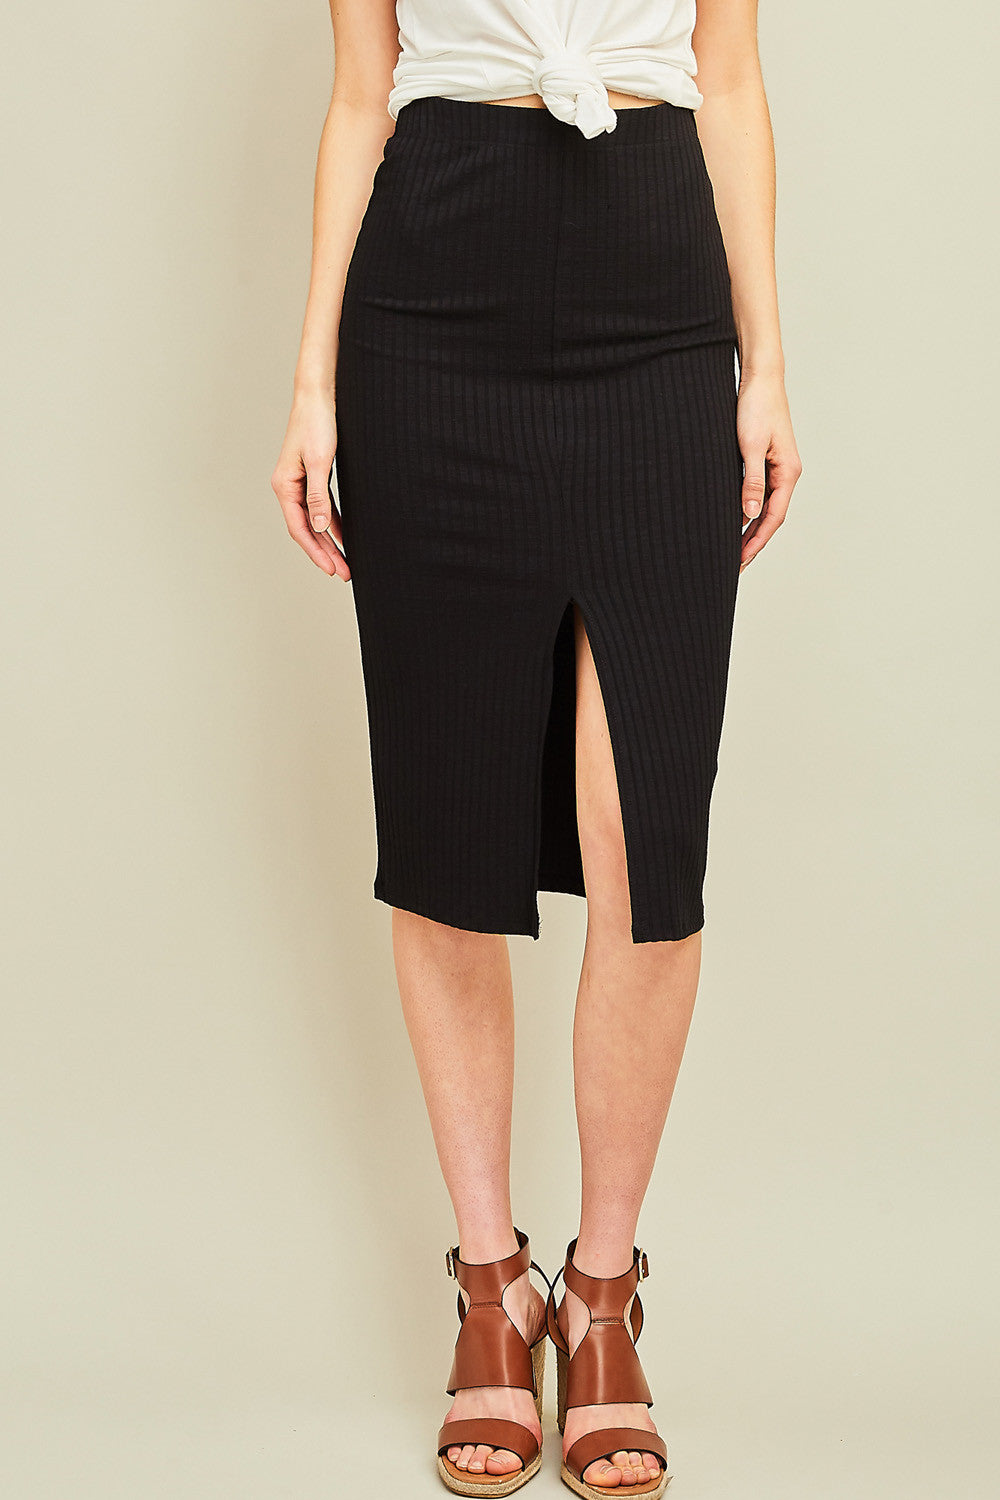 Midnight Knit Pencil Skirt